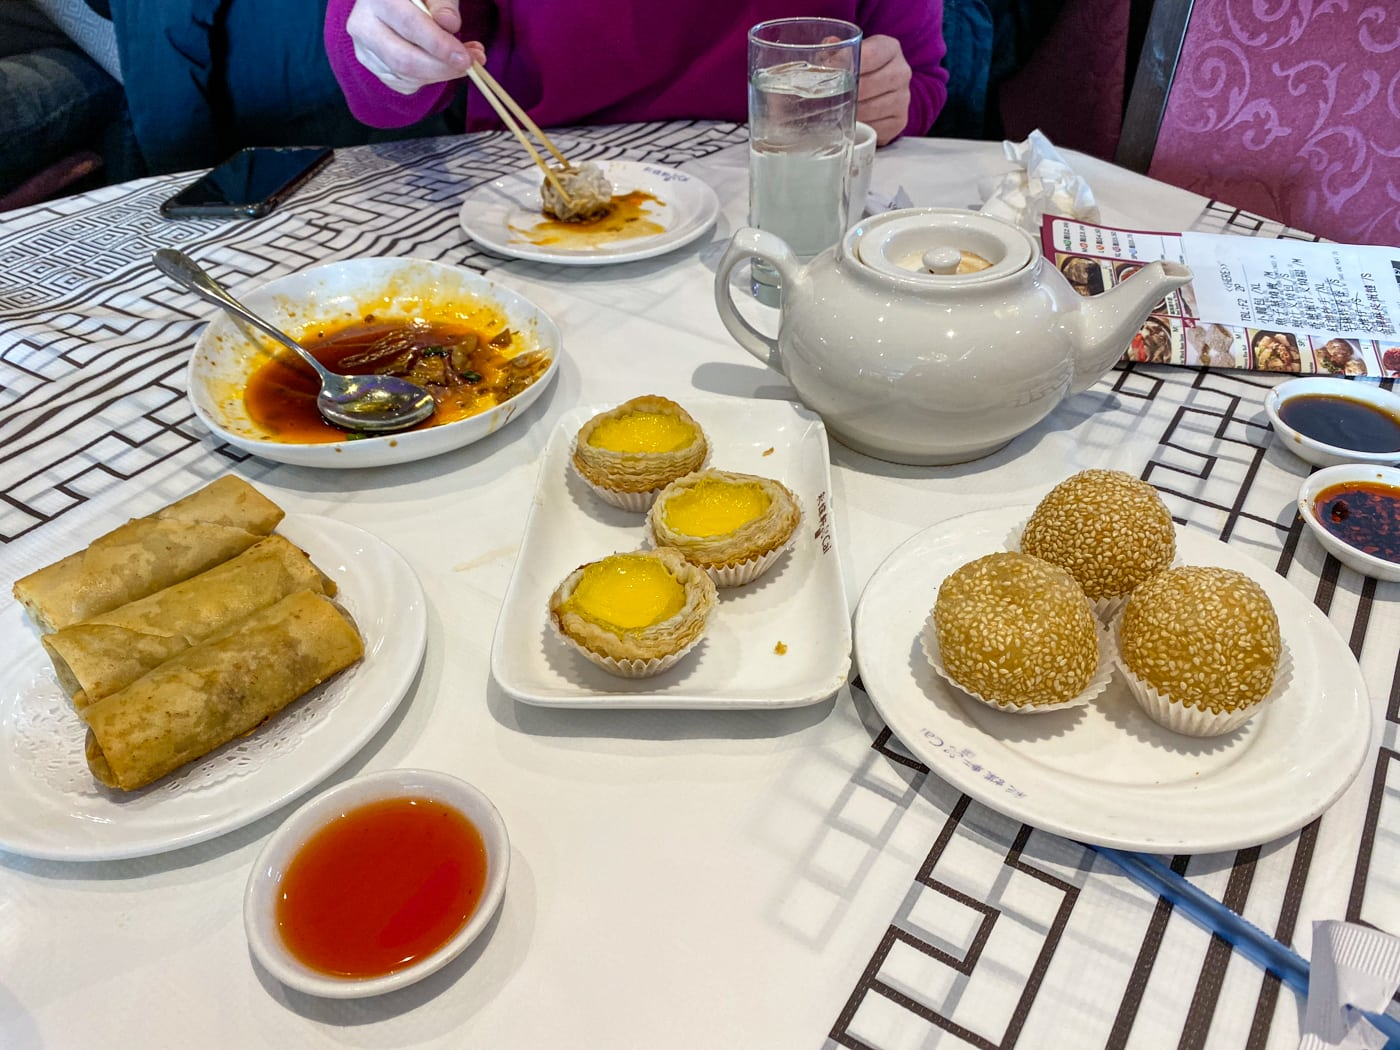 Egg custards, sesame balls, and deep fried spring rolls with taro and chicken at dim sum at Cai in Chinatown in Chicago for my birthday.